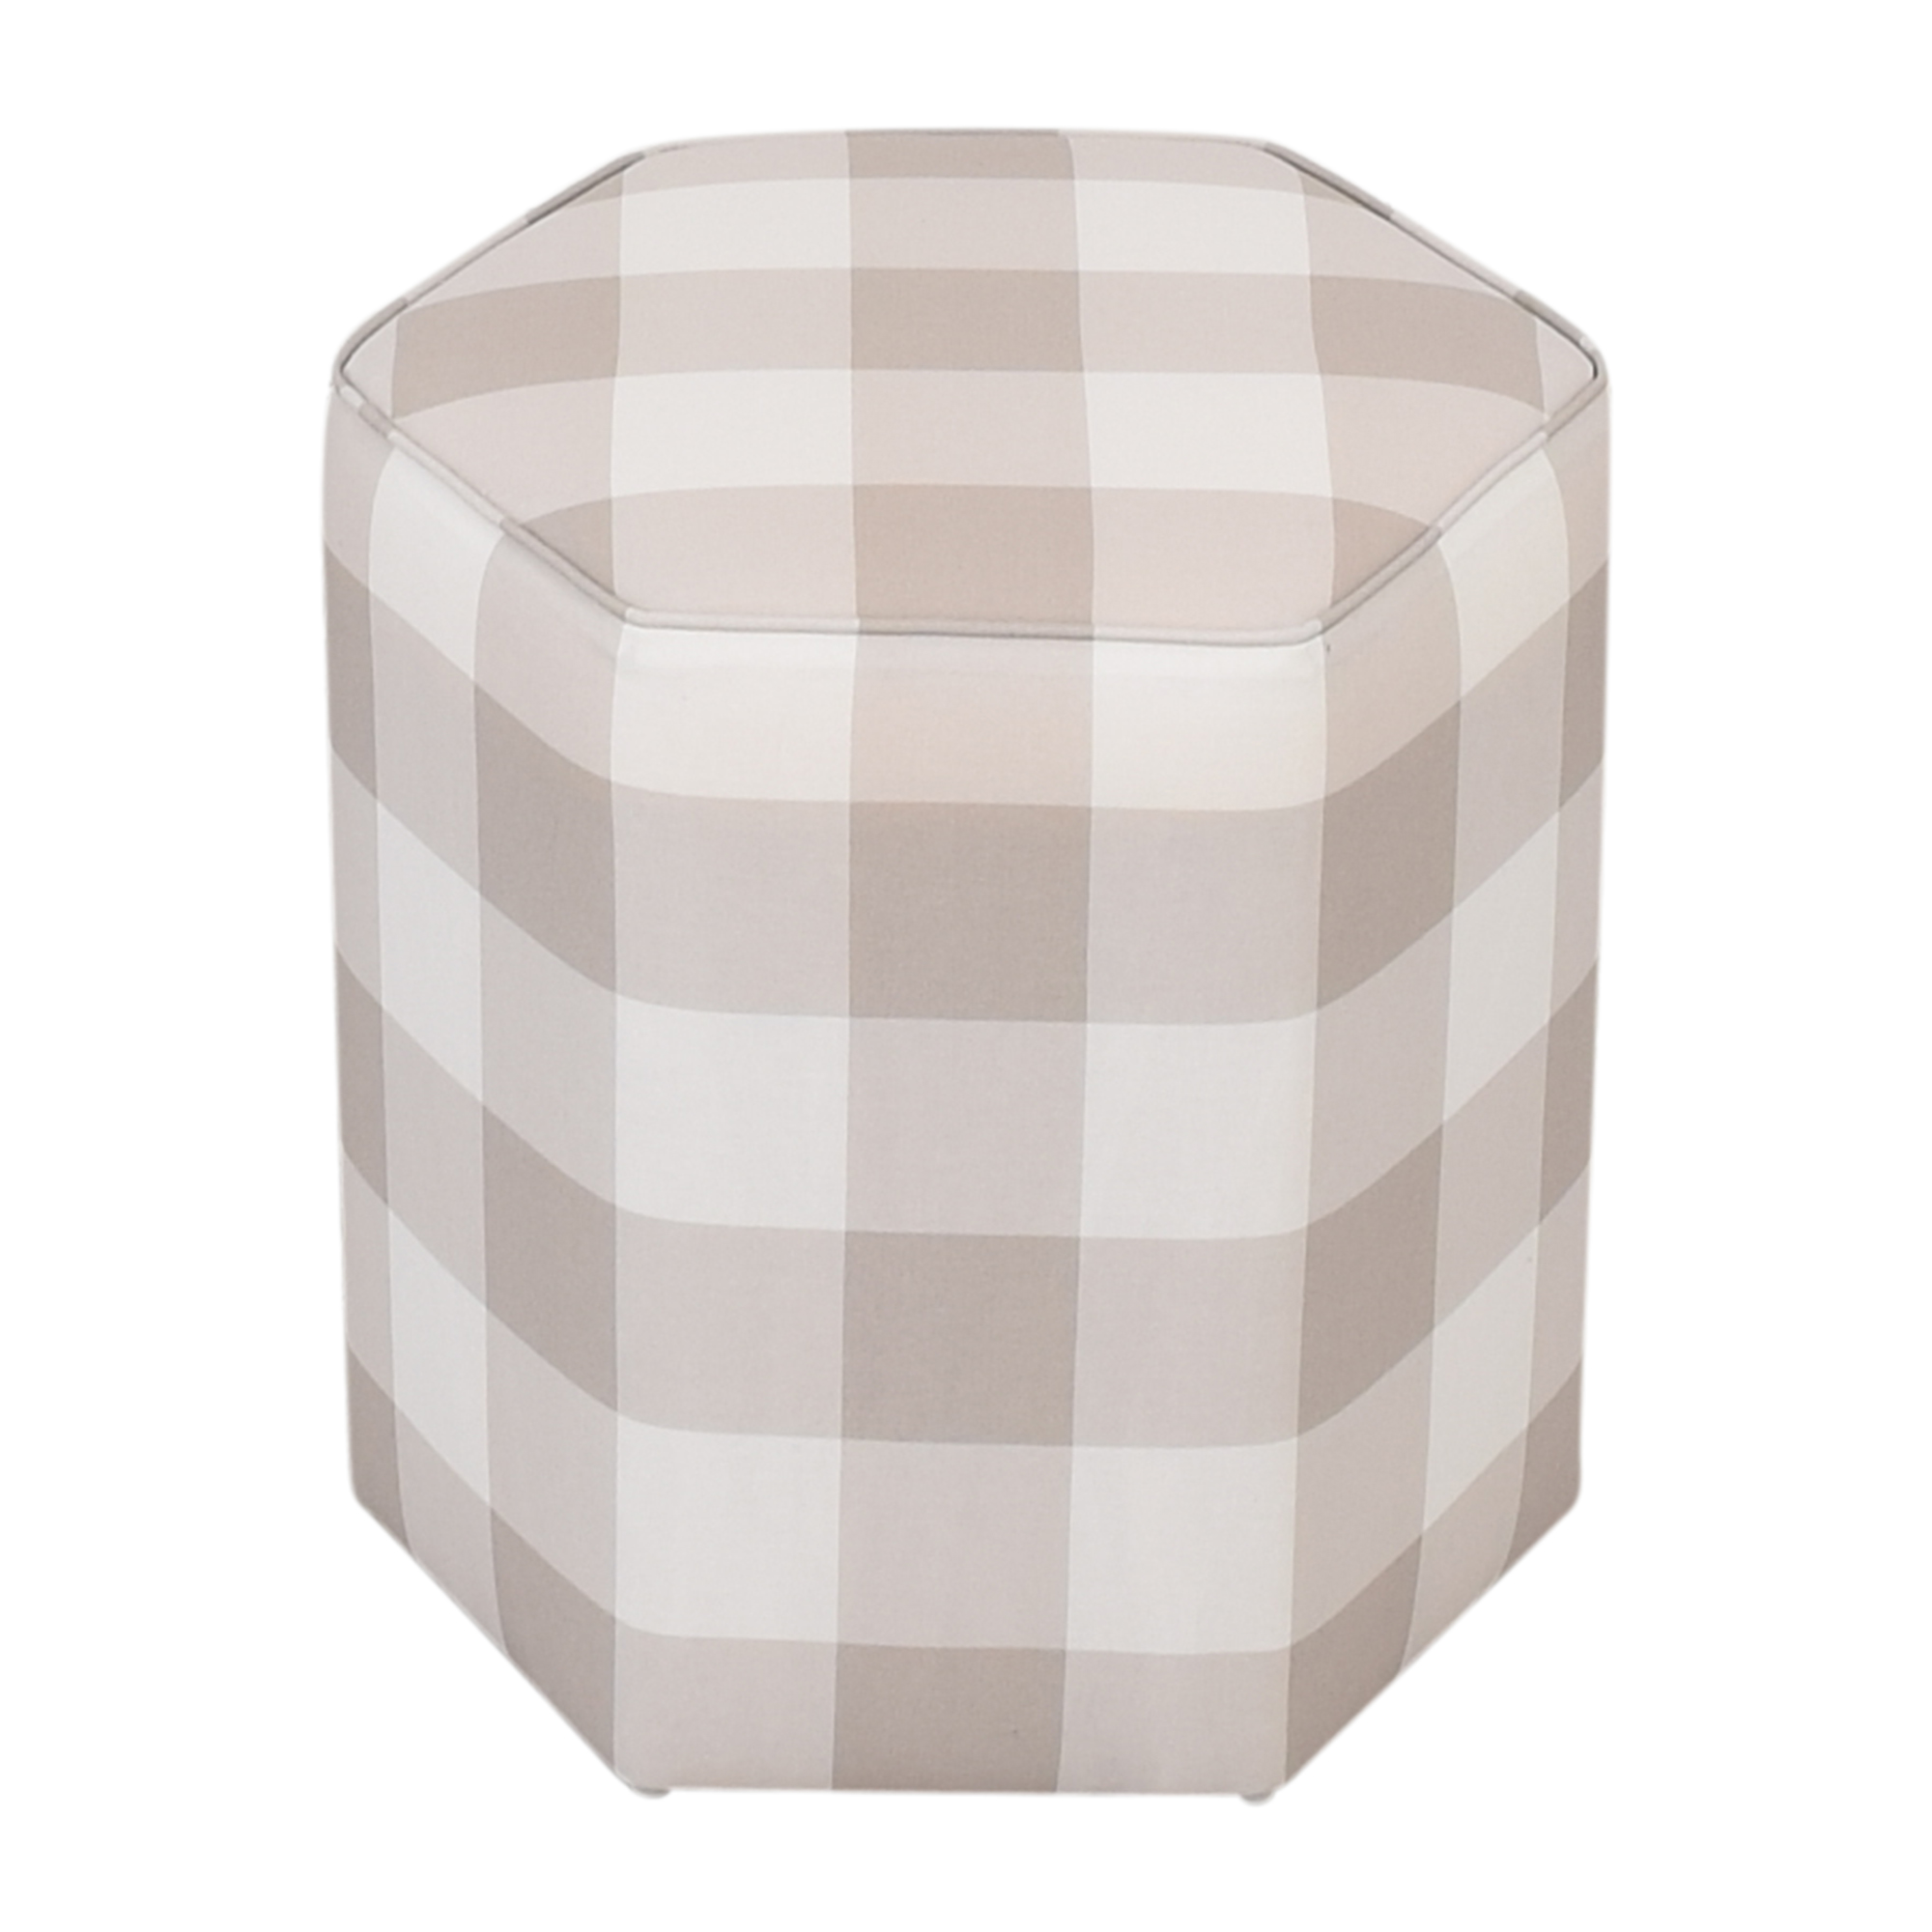 The Inside The Inside Hexagonal Ottoman white and off white